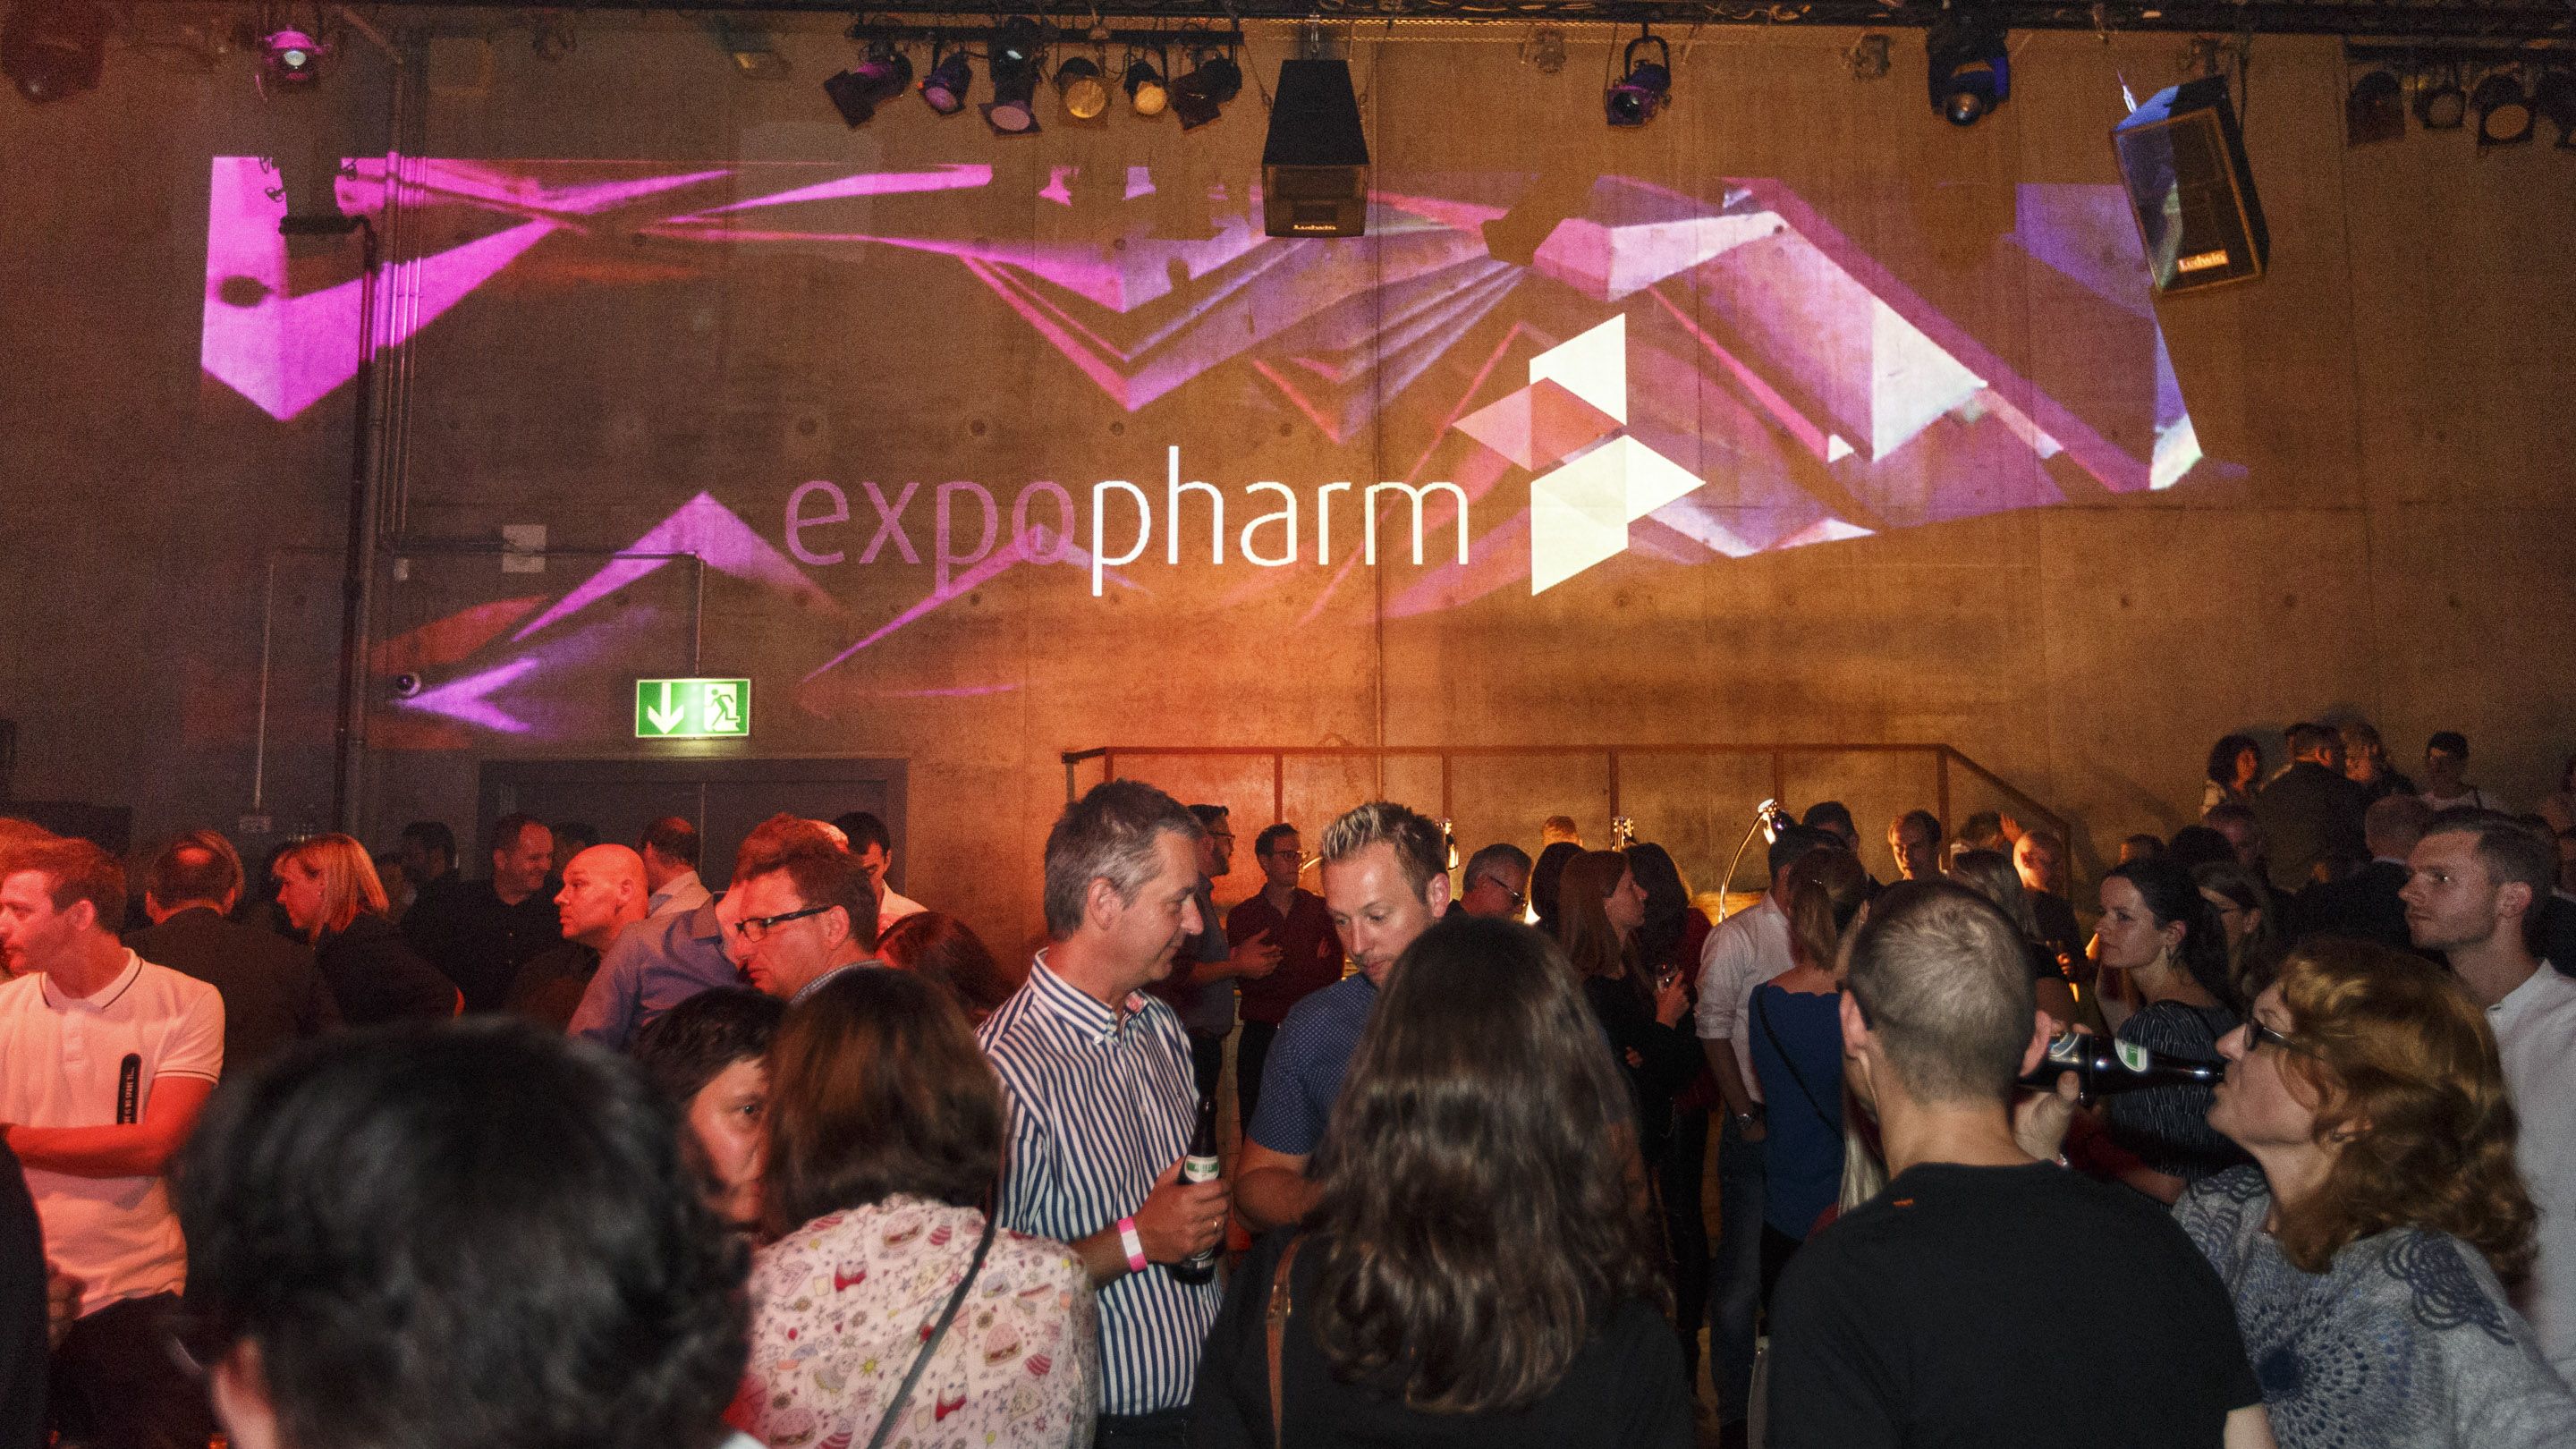 expopharm Night 2018